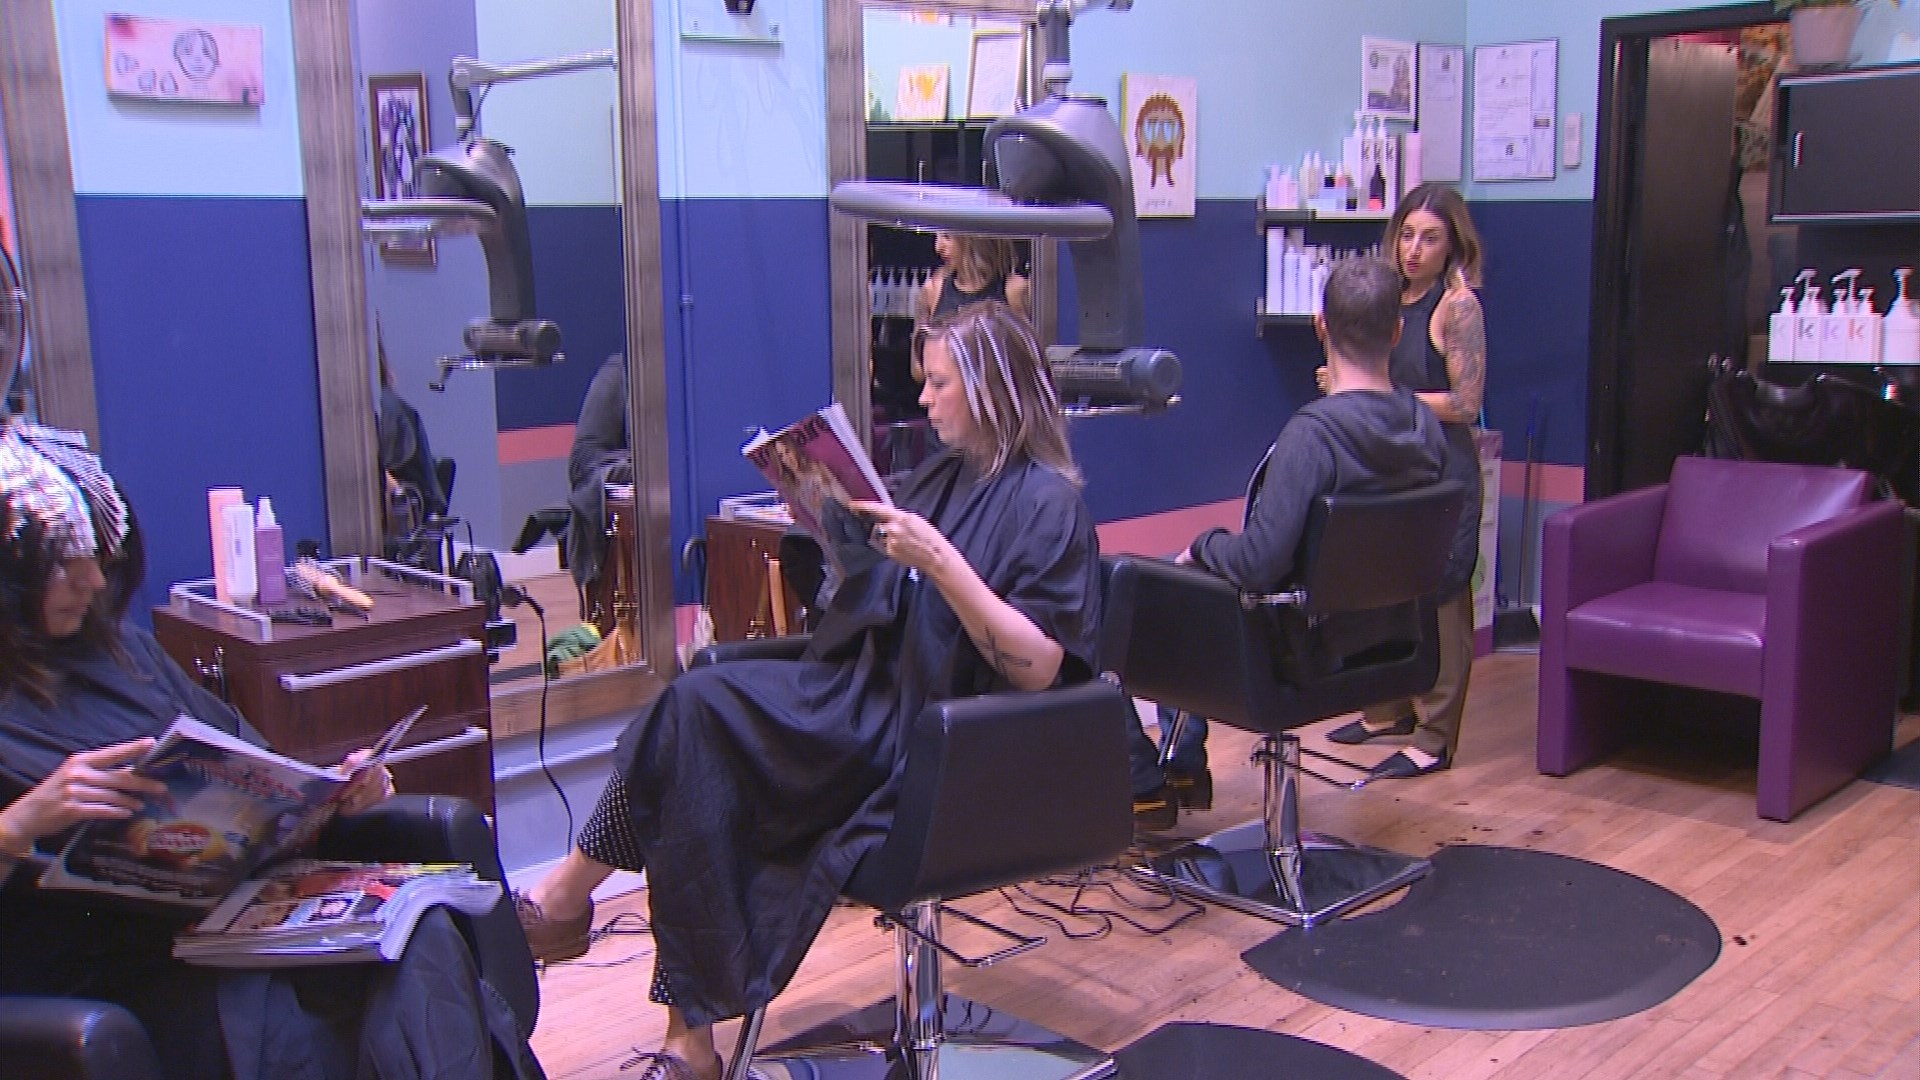 Salon Traffic King5 Seattle Salon Shares Trademark Warning For